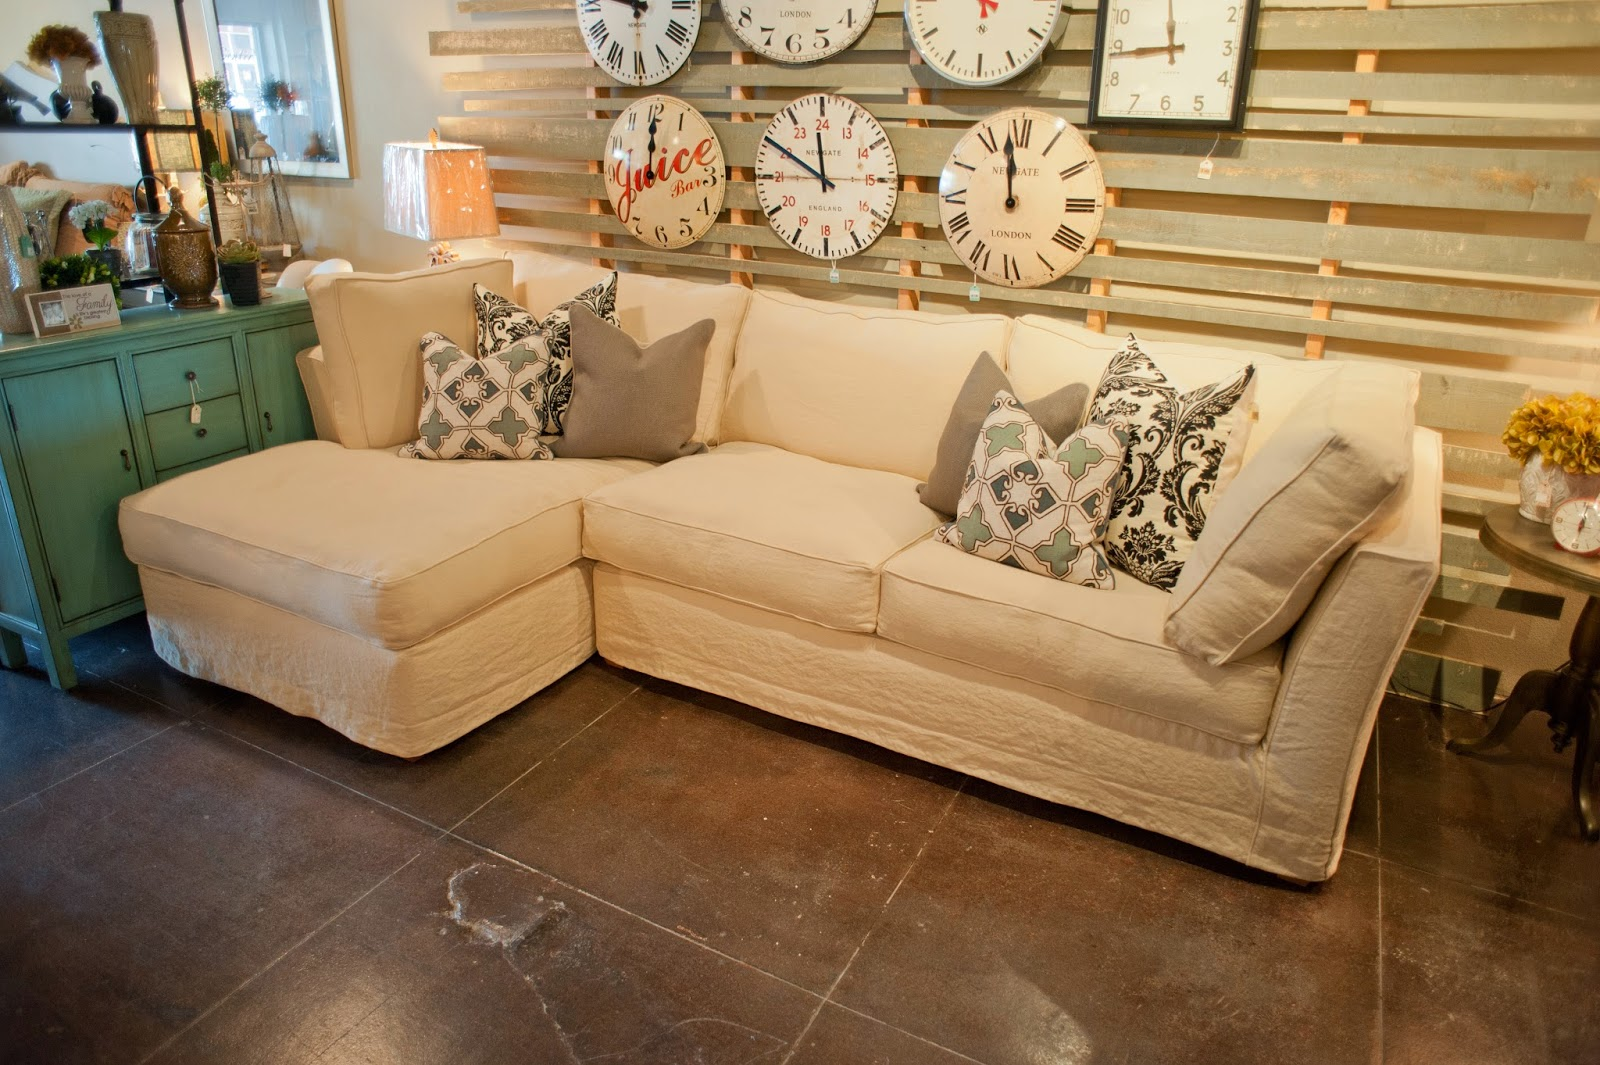 Simply klassic interiors for Klassic furniture